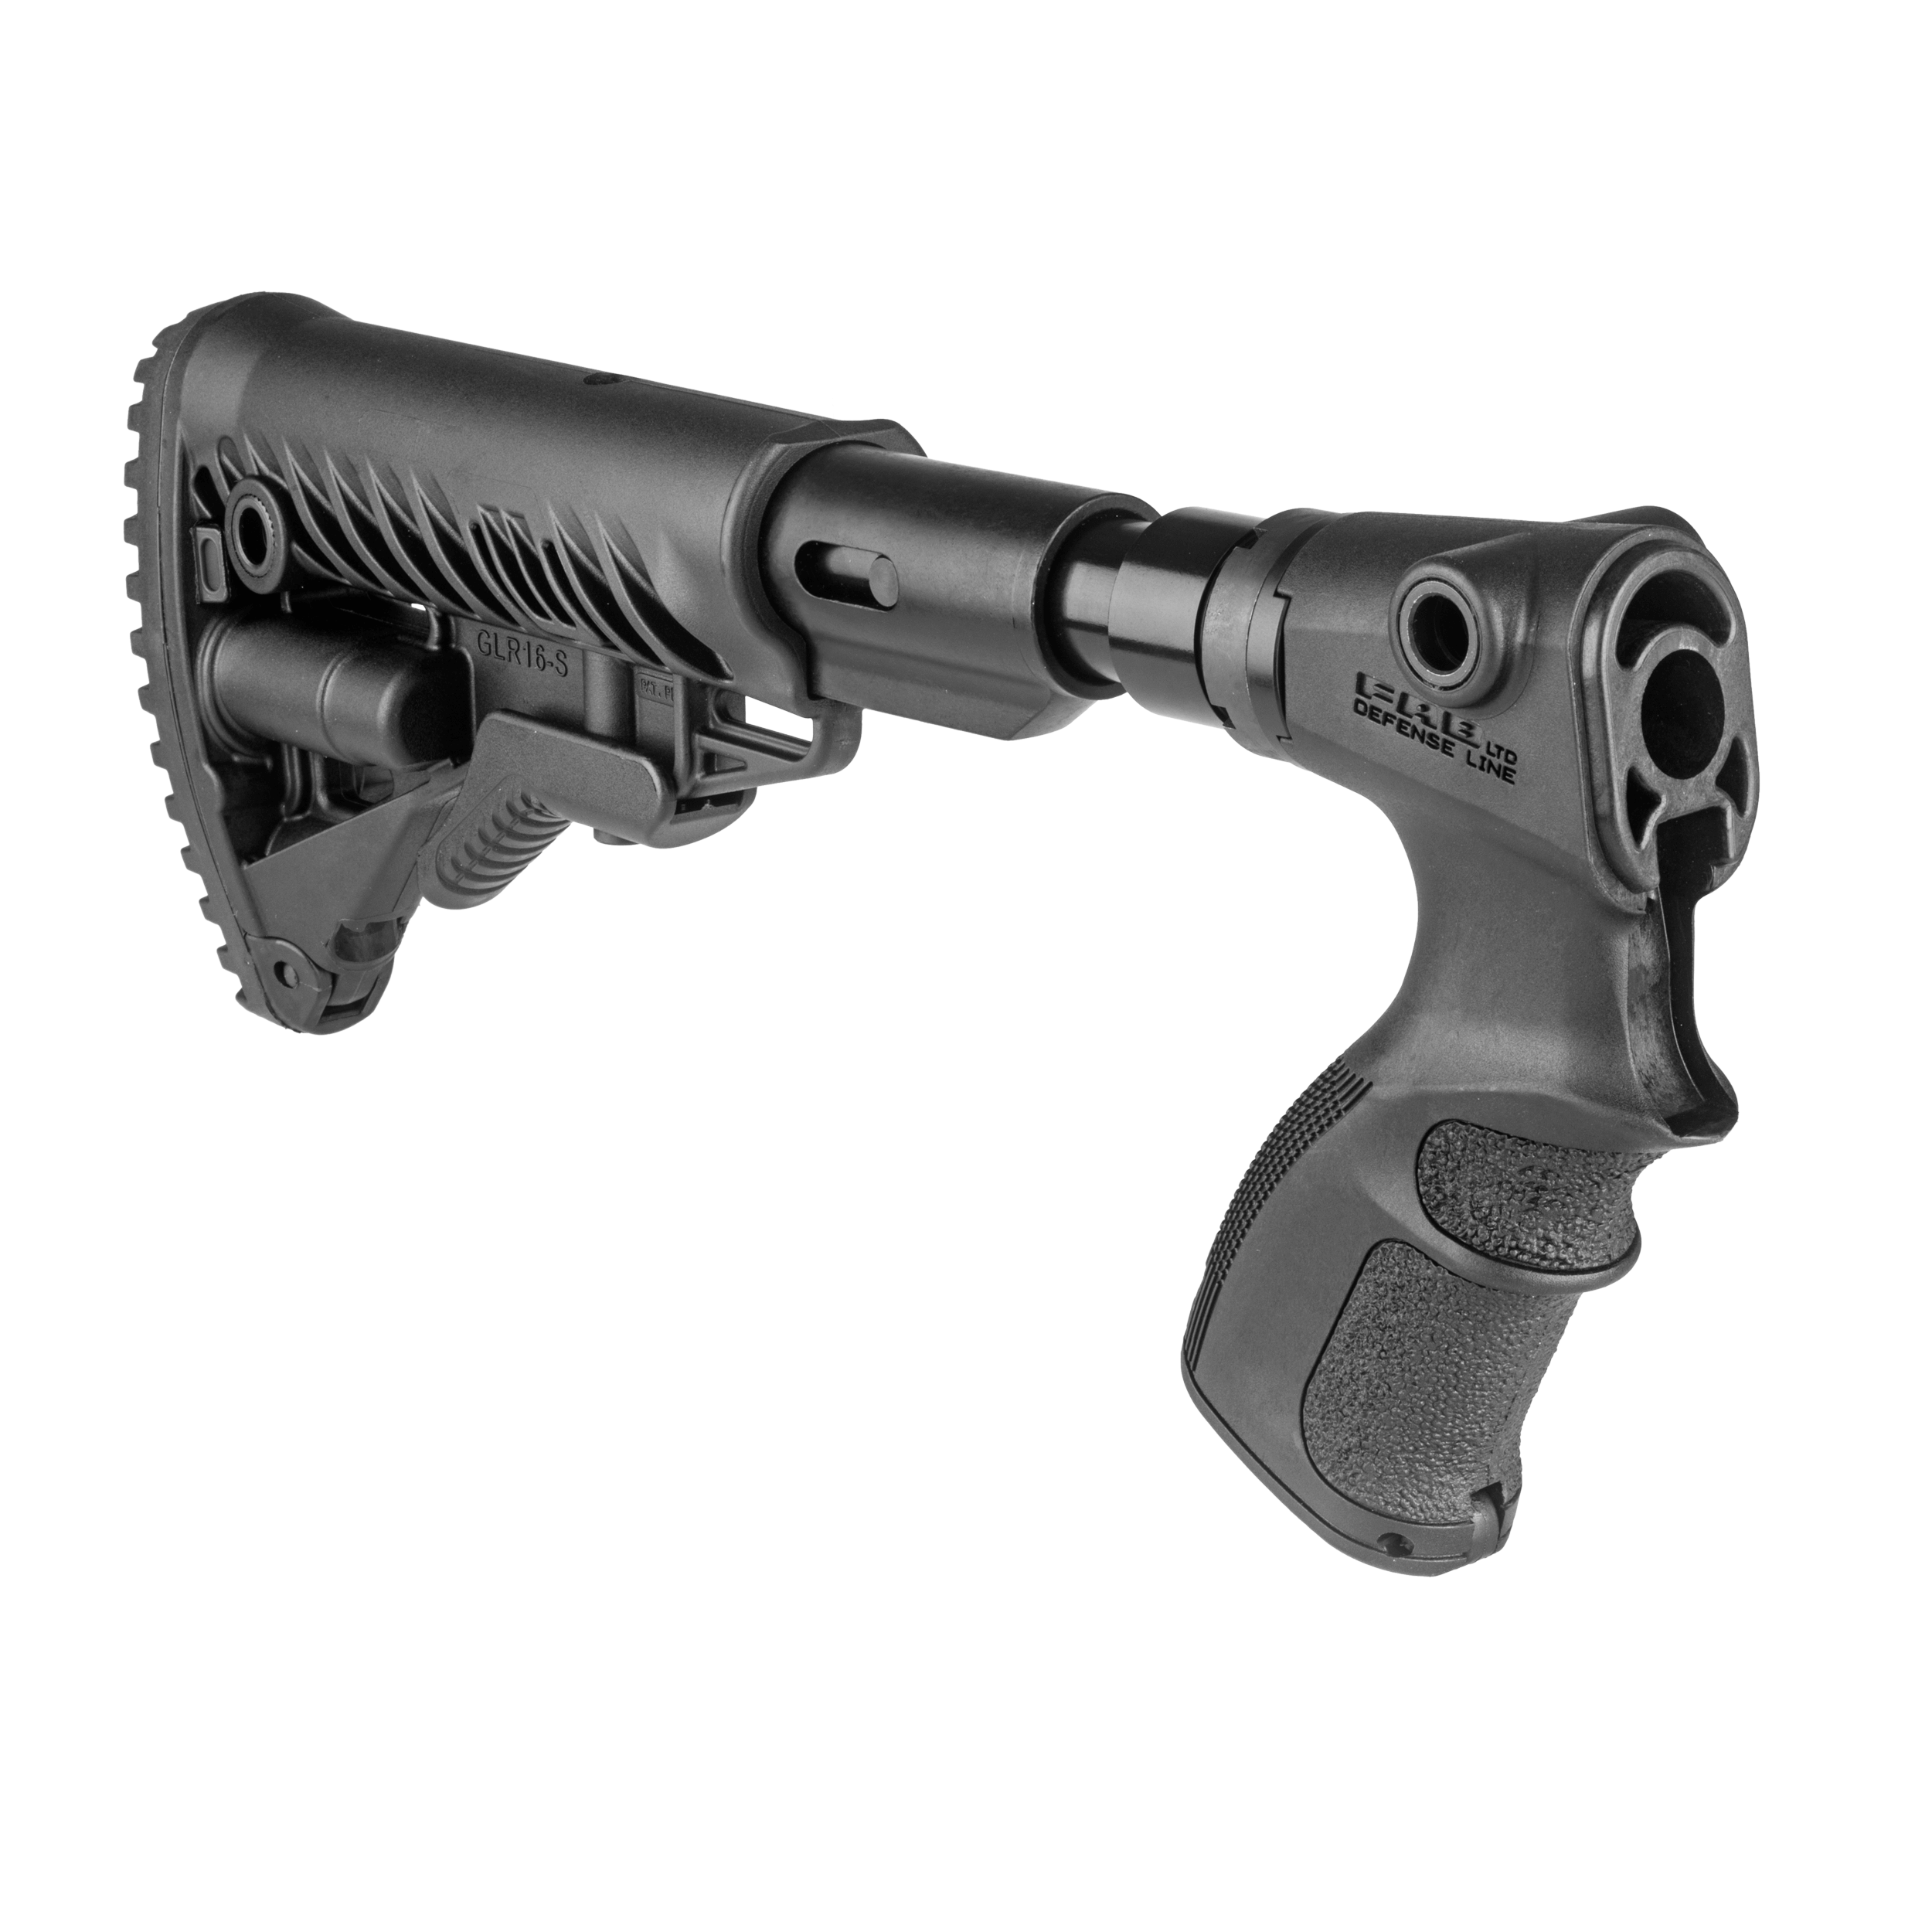 Remington 870 Buttstock with Pistol grip / Shock Absorber